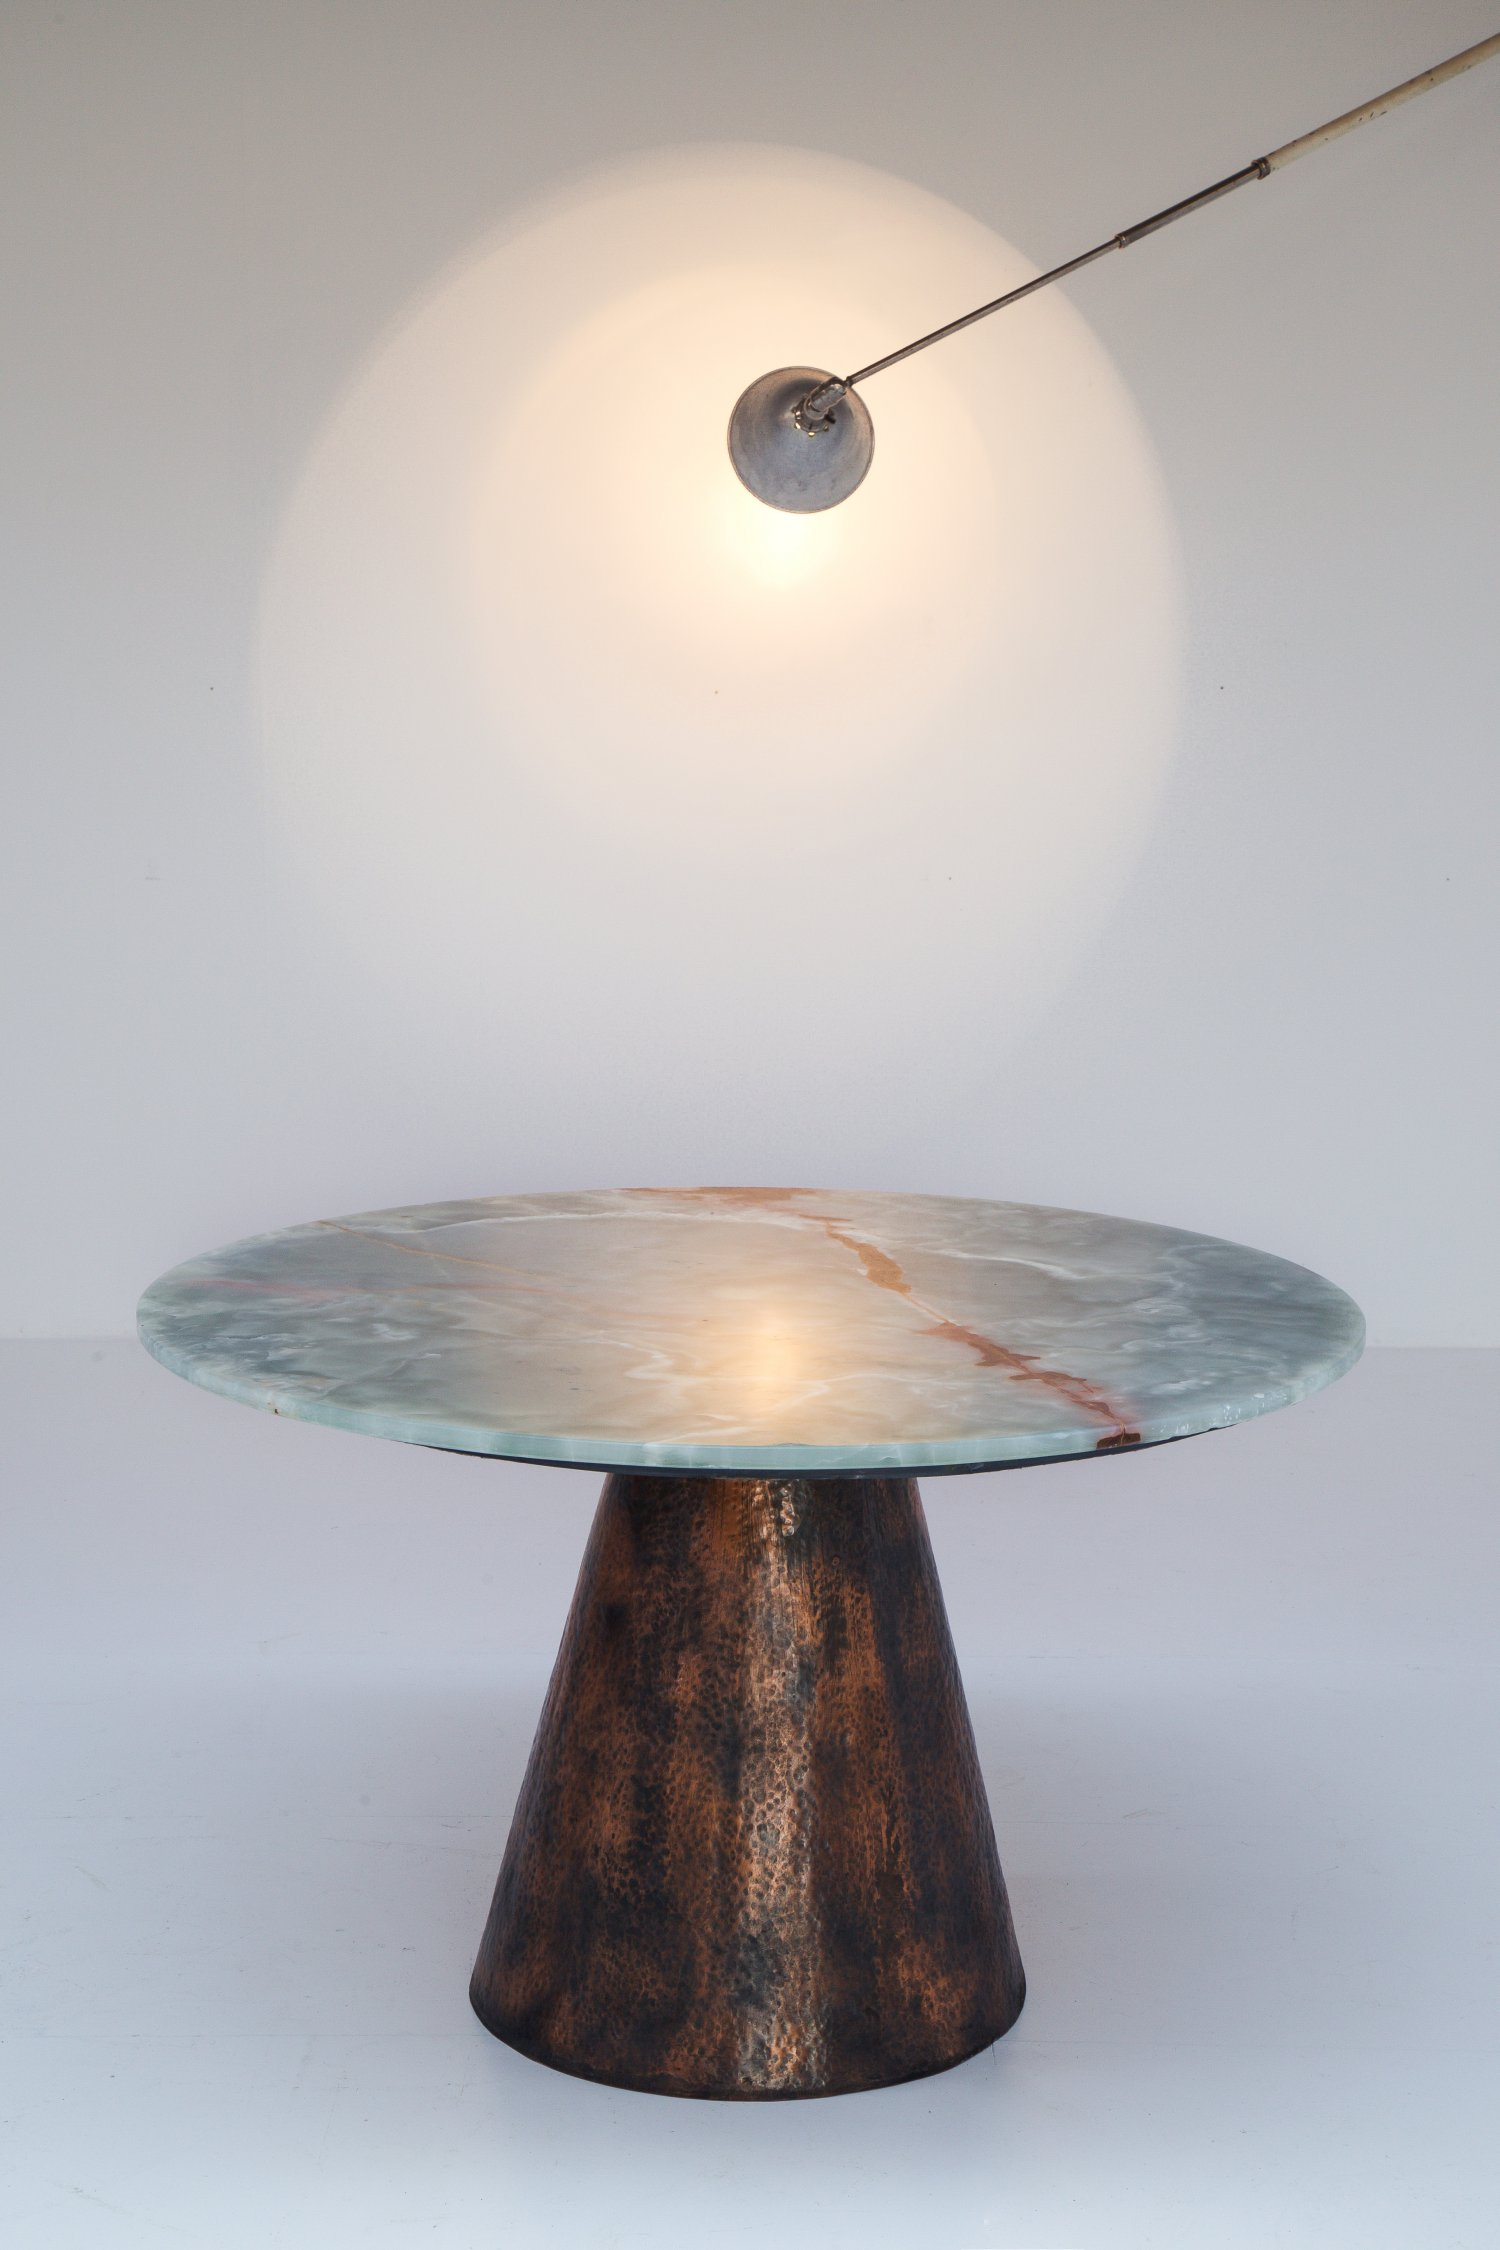 Copper and onyx dining table.